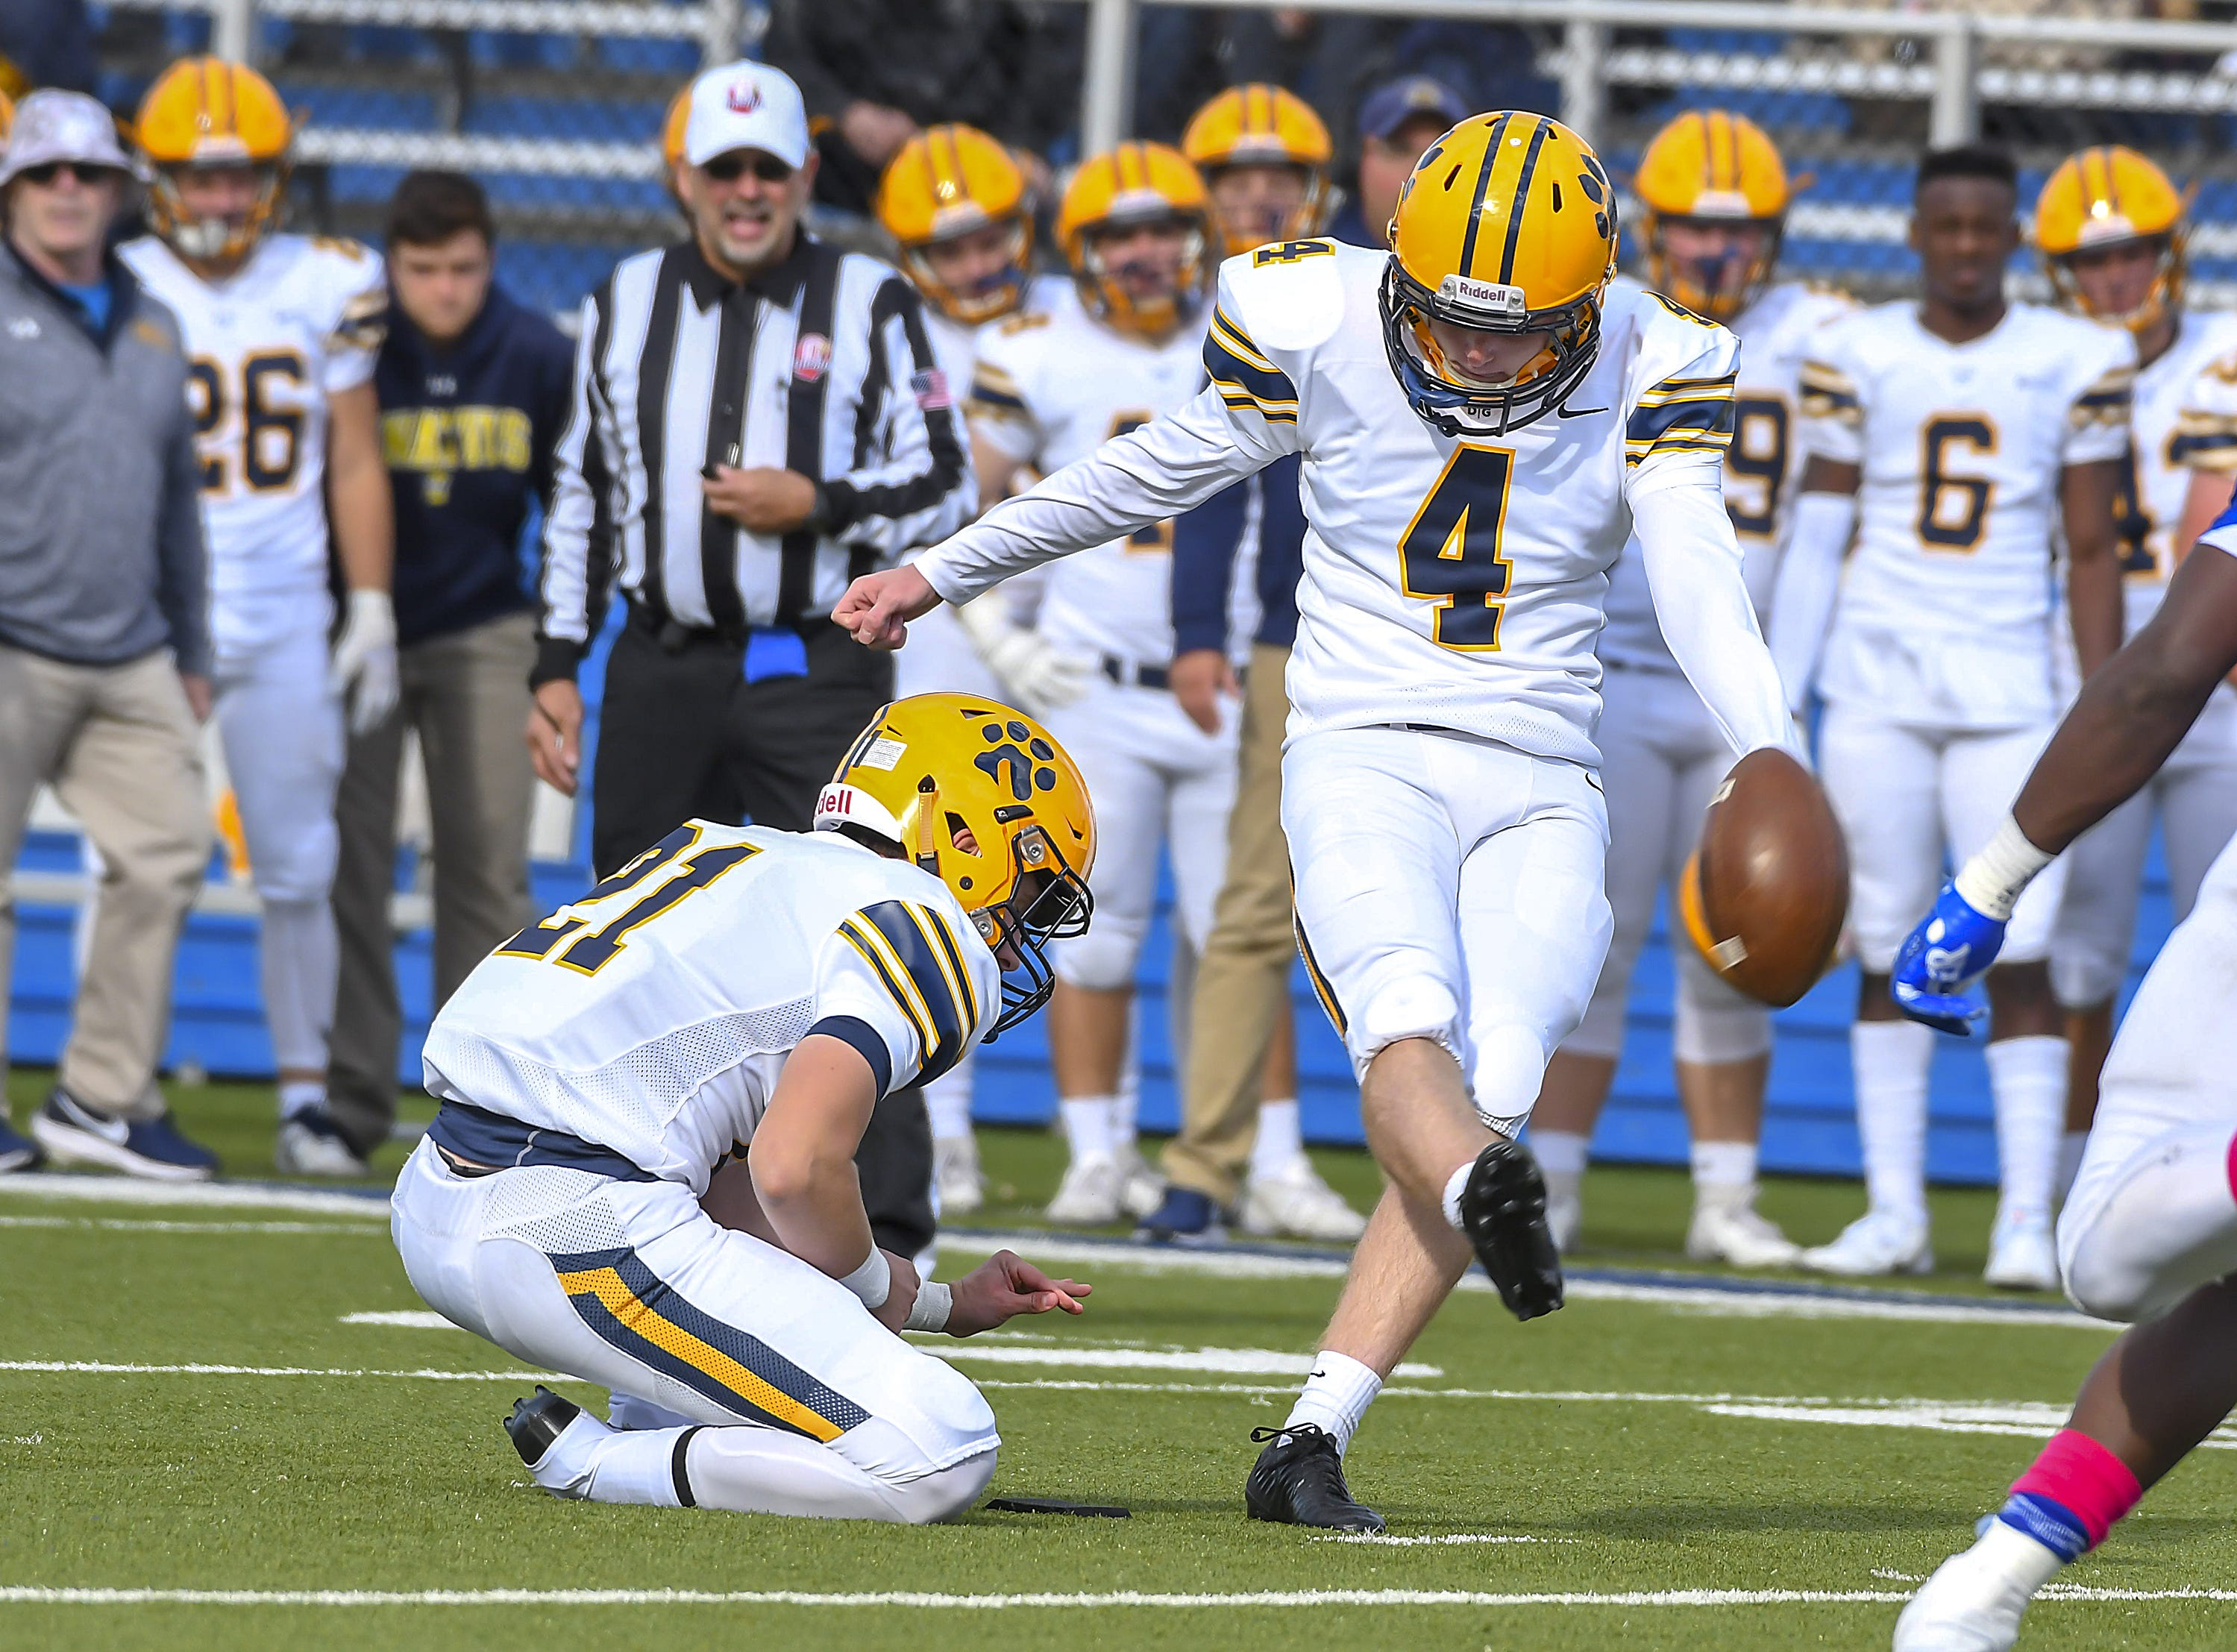 St. Ignatius kicker Rory McConville kicks the go ahead field goal in the fourth quareter against St. X at St. Xavier High School, Saturday, October, 20 2018